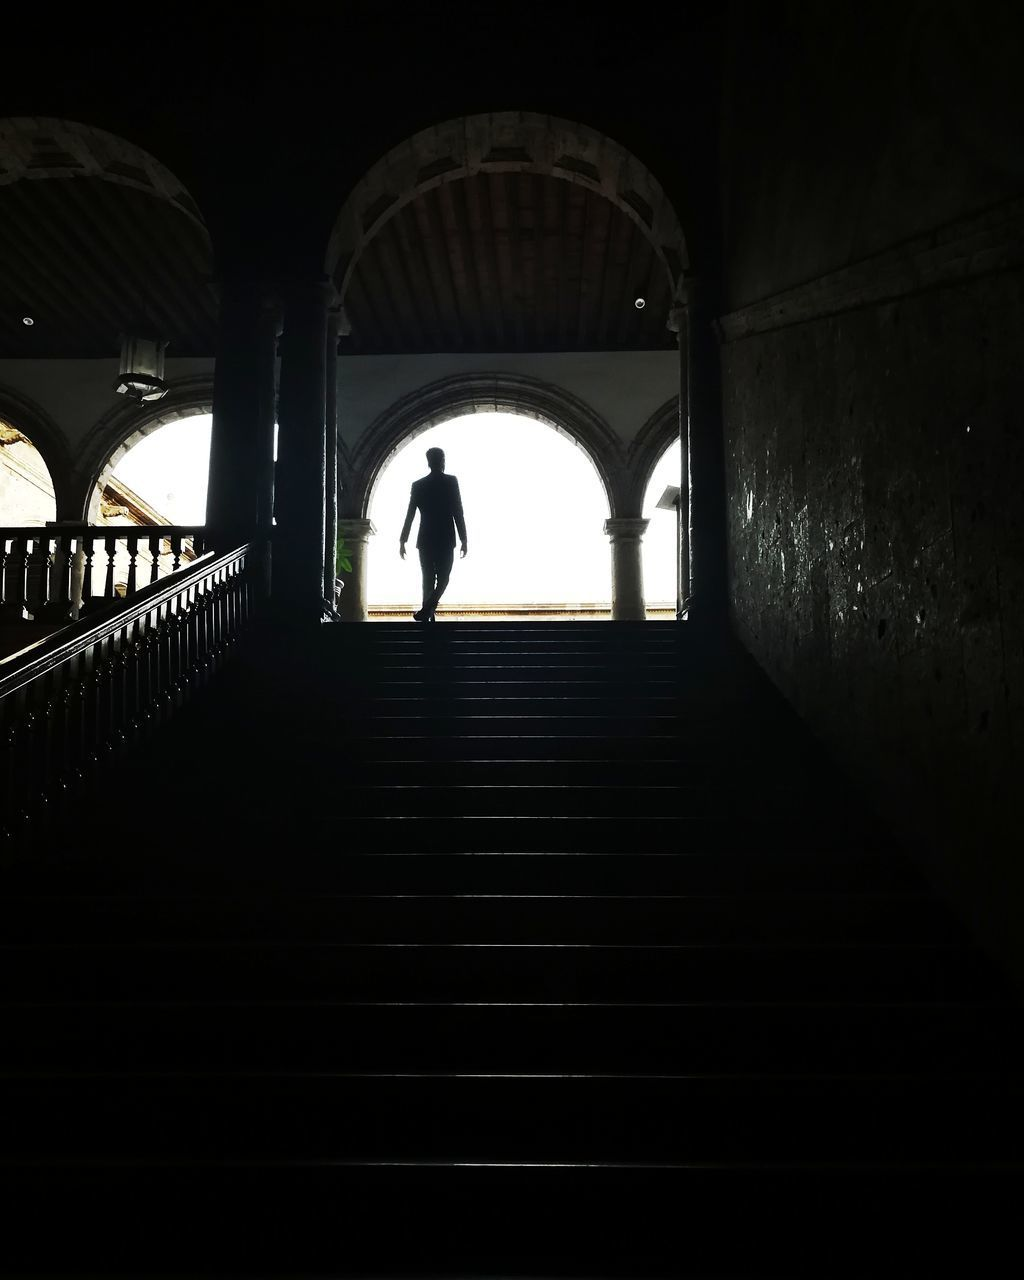 SILHOUETTE WOMAN STANDING ON STAIRCASE IN TUNNEL